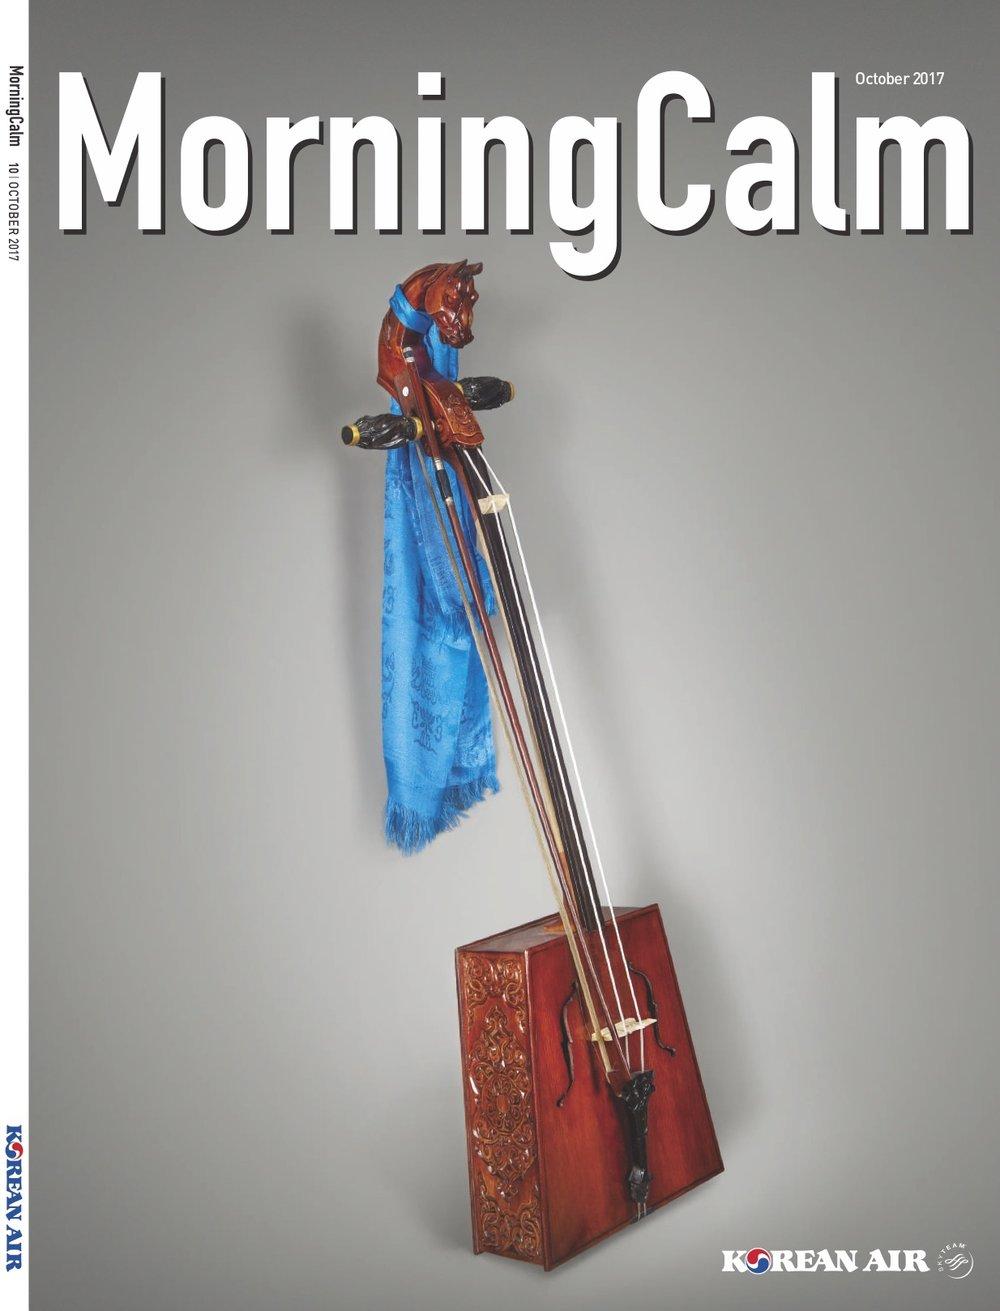 Morning Calm magazine cover